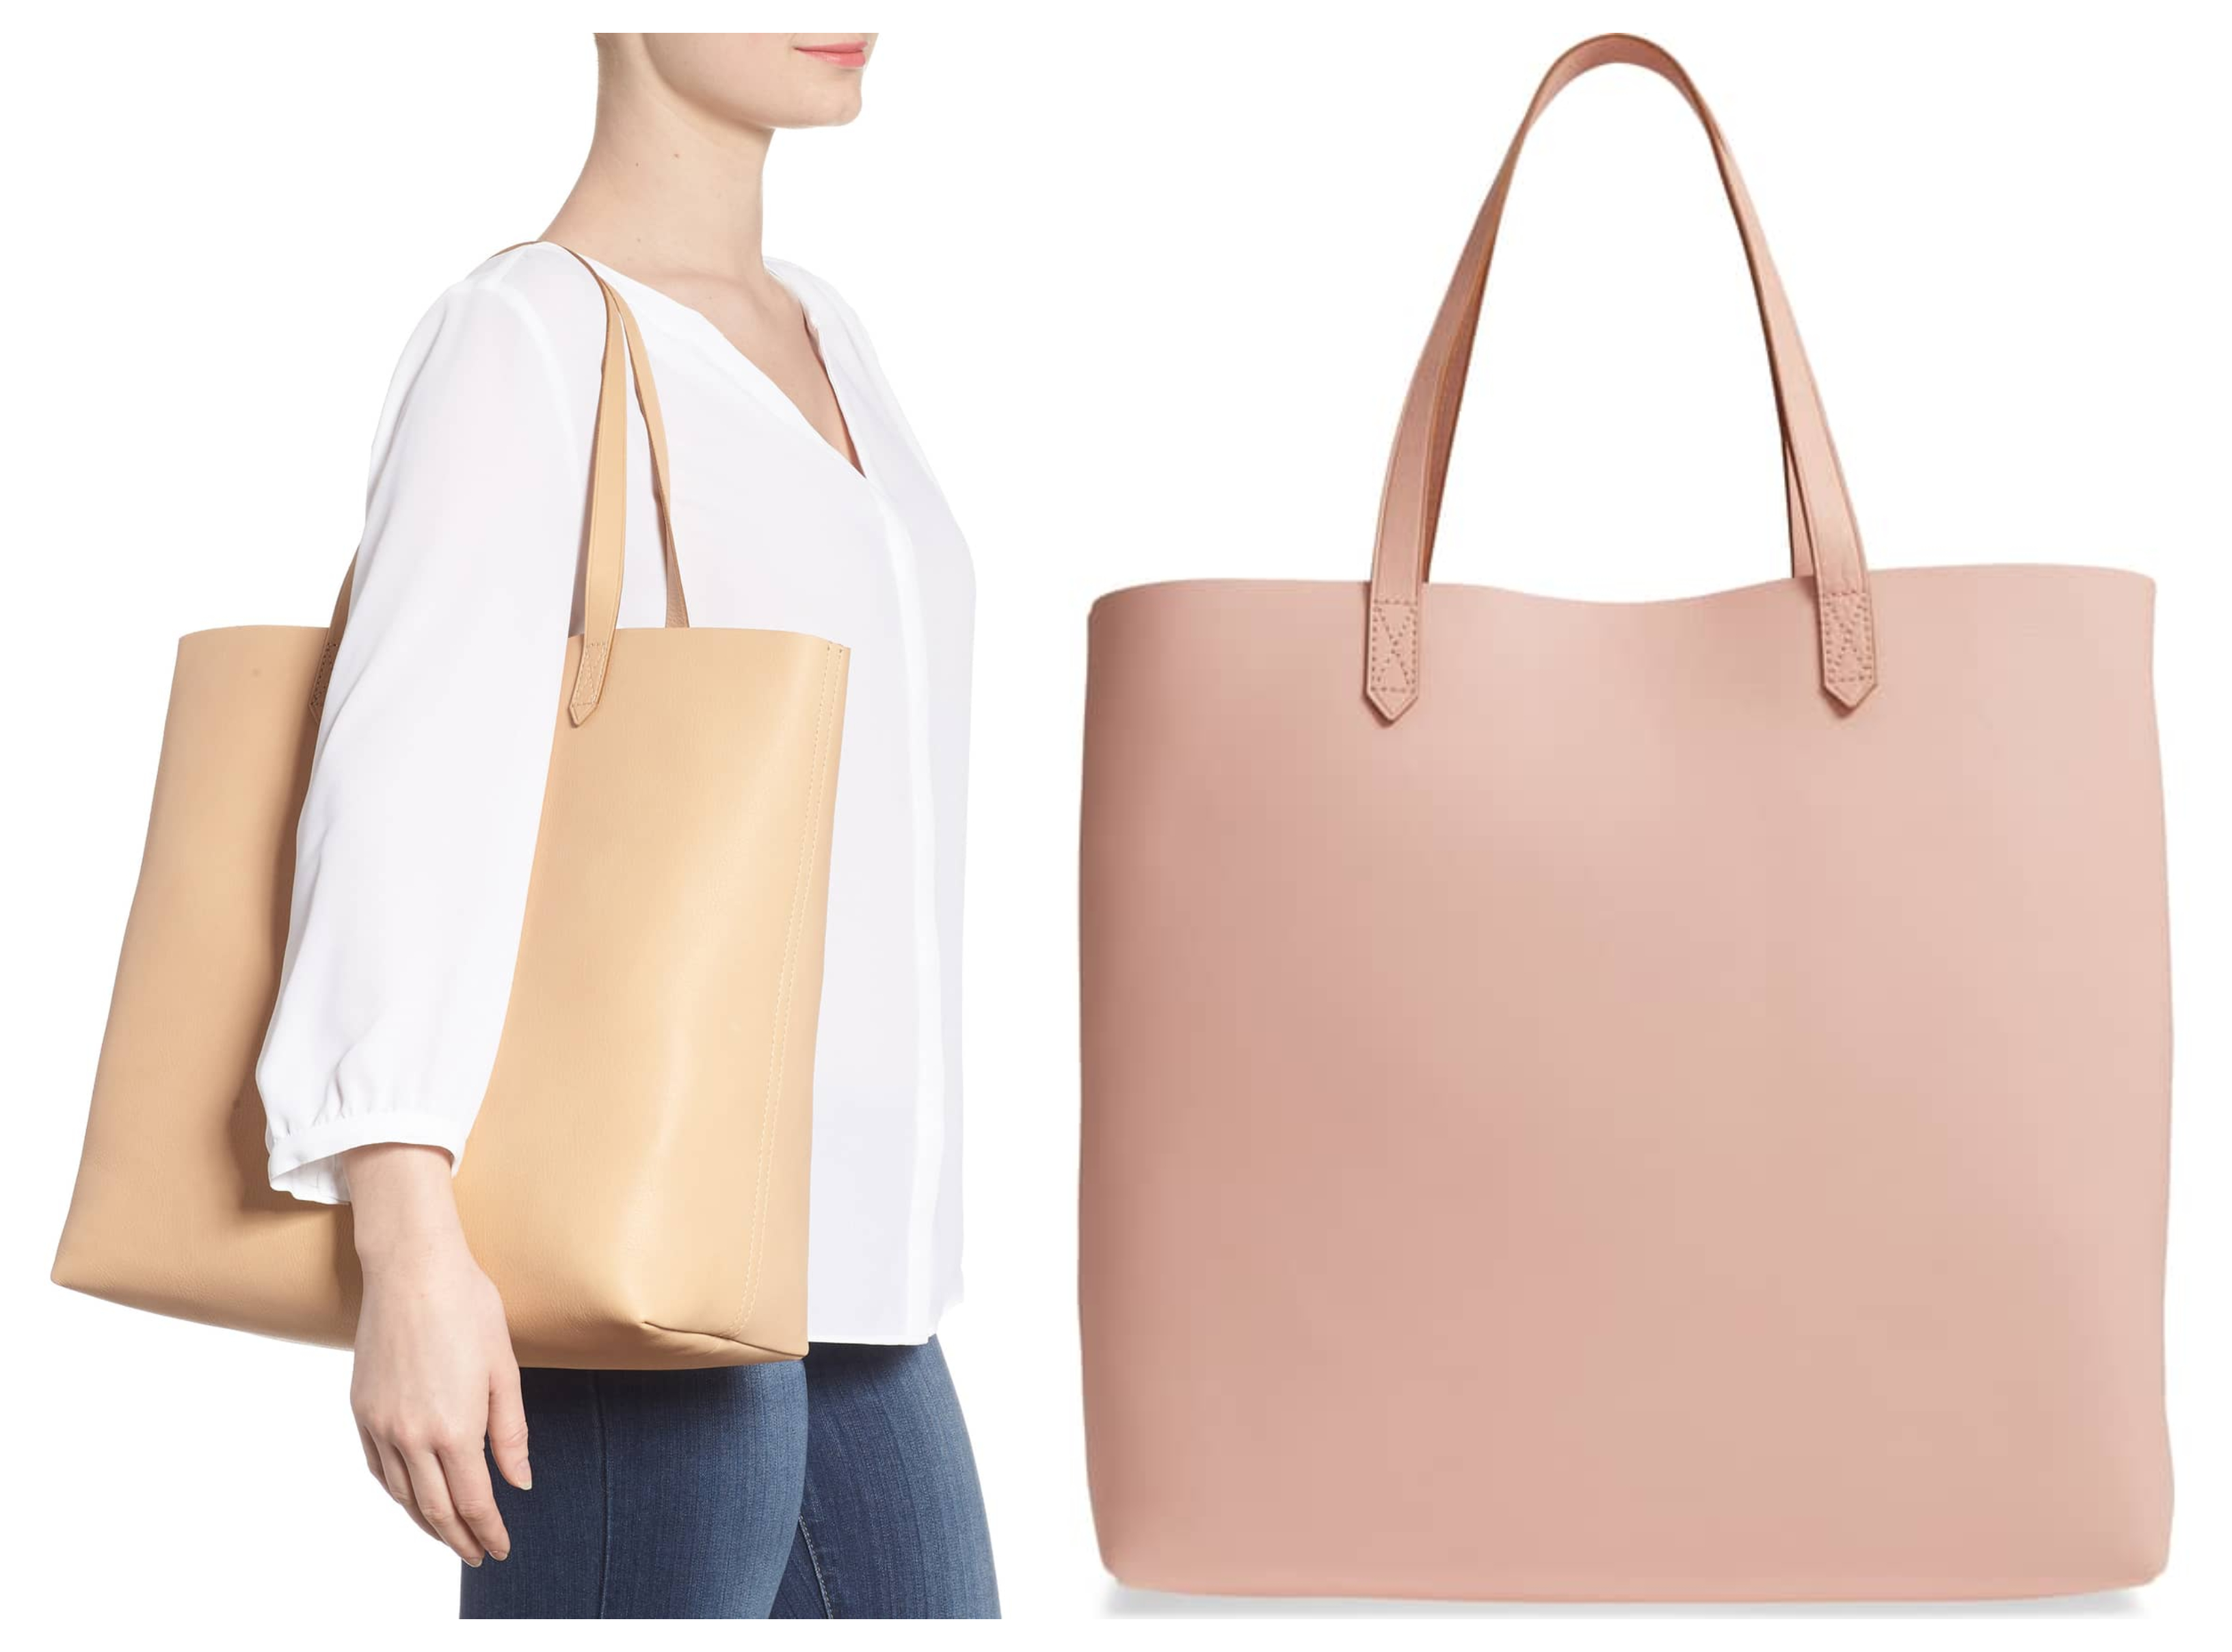 Nordstrom  Madewell  Transport  Leather Tote – 50% off + Free Shipping! 35b34aec98639